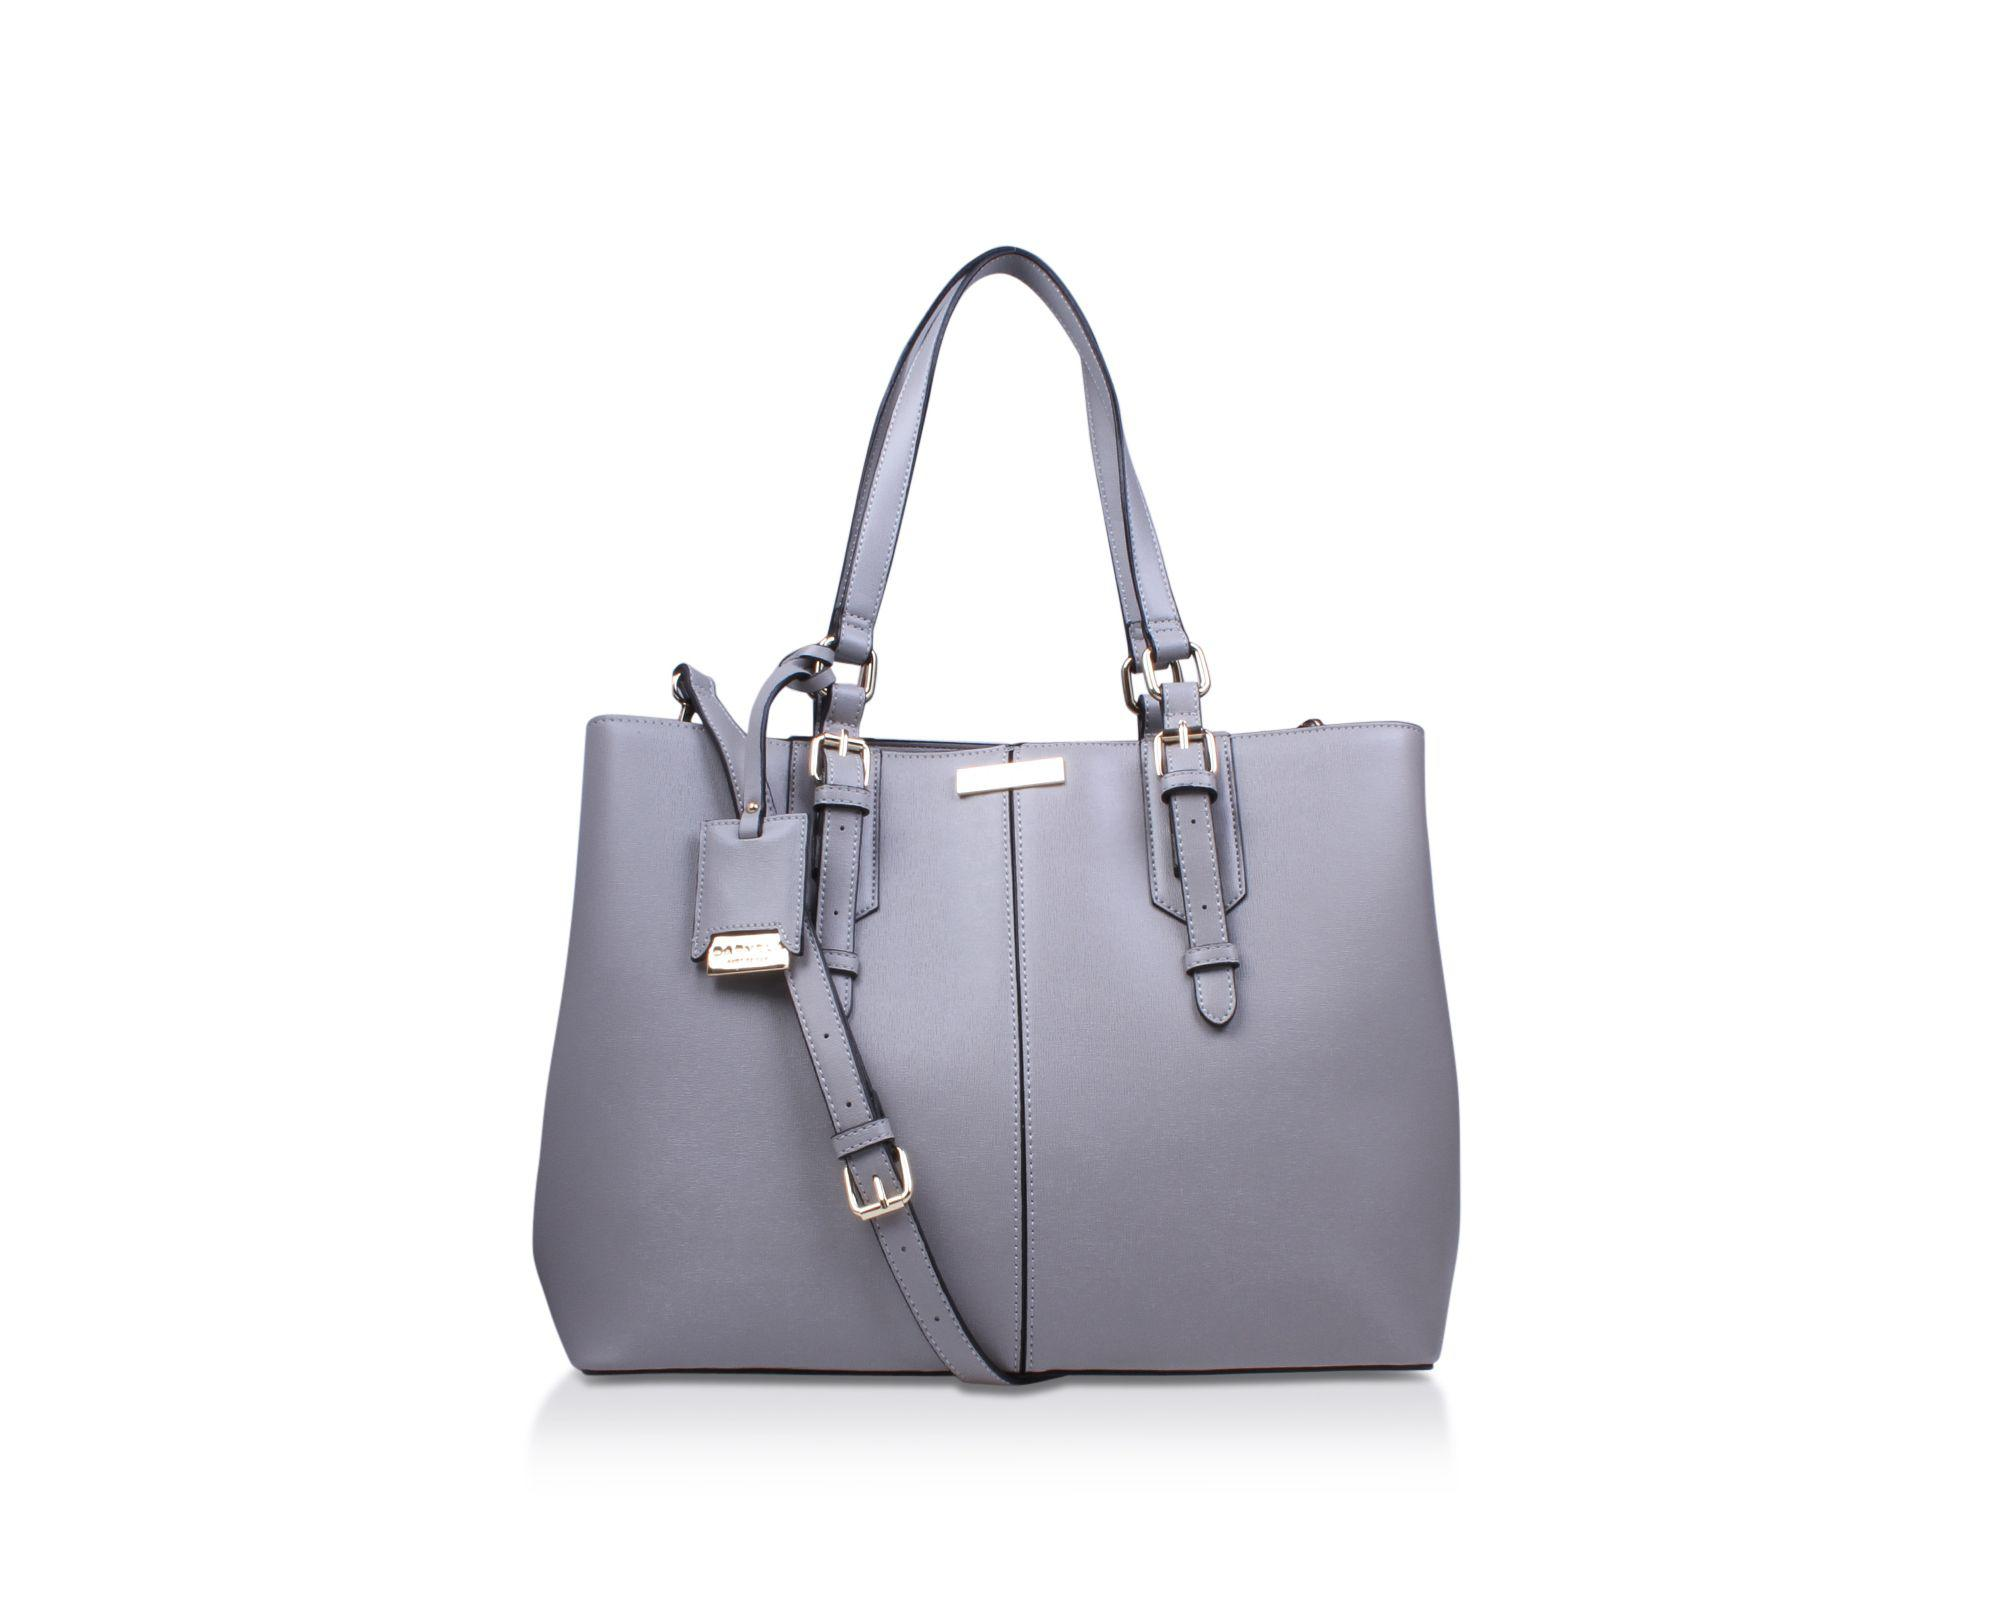 6a7843303a7a Carvela Kurt Geiger Grey  ortha2 Slouch Tote  Tote Bag in Gray - Lyst